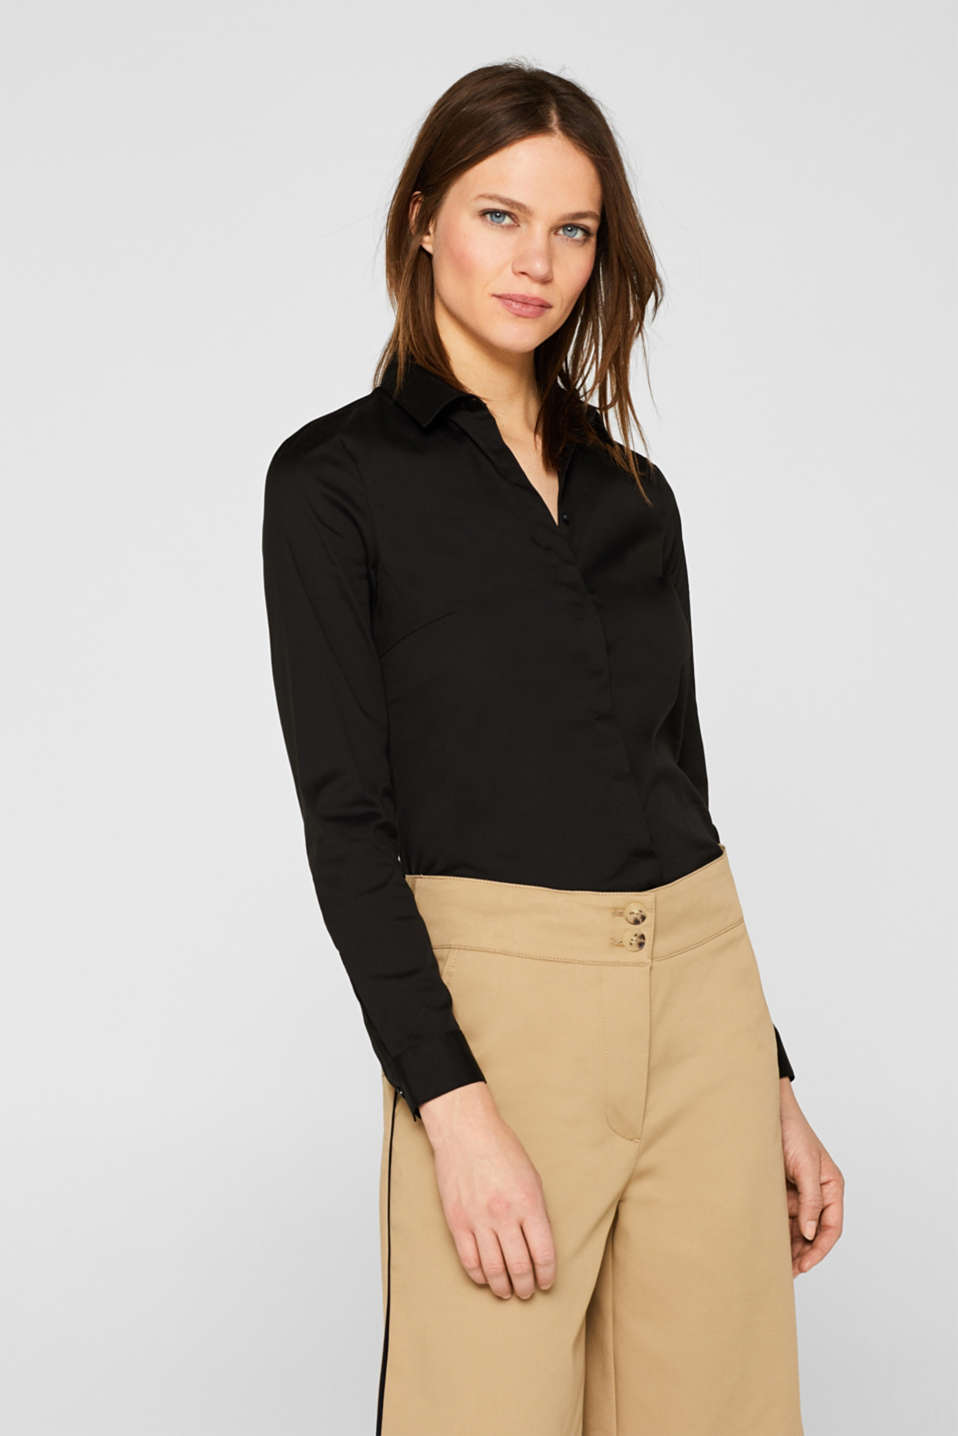 Esprit - Classic shirt blouse with stretch for comfort